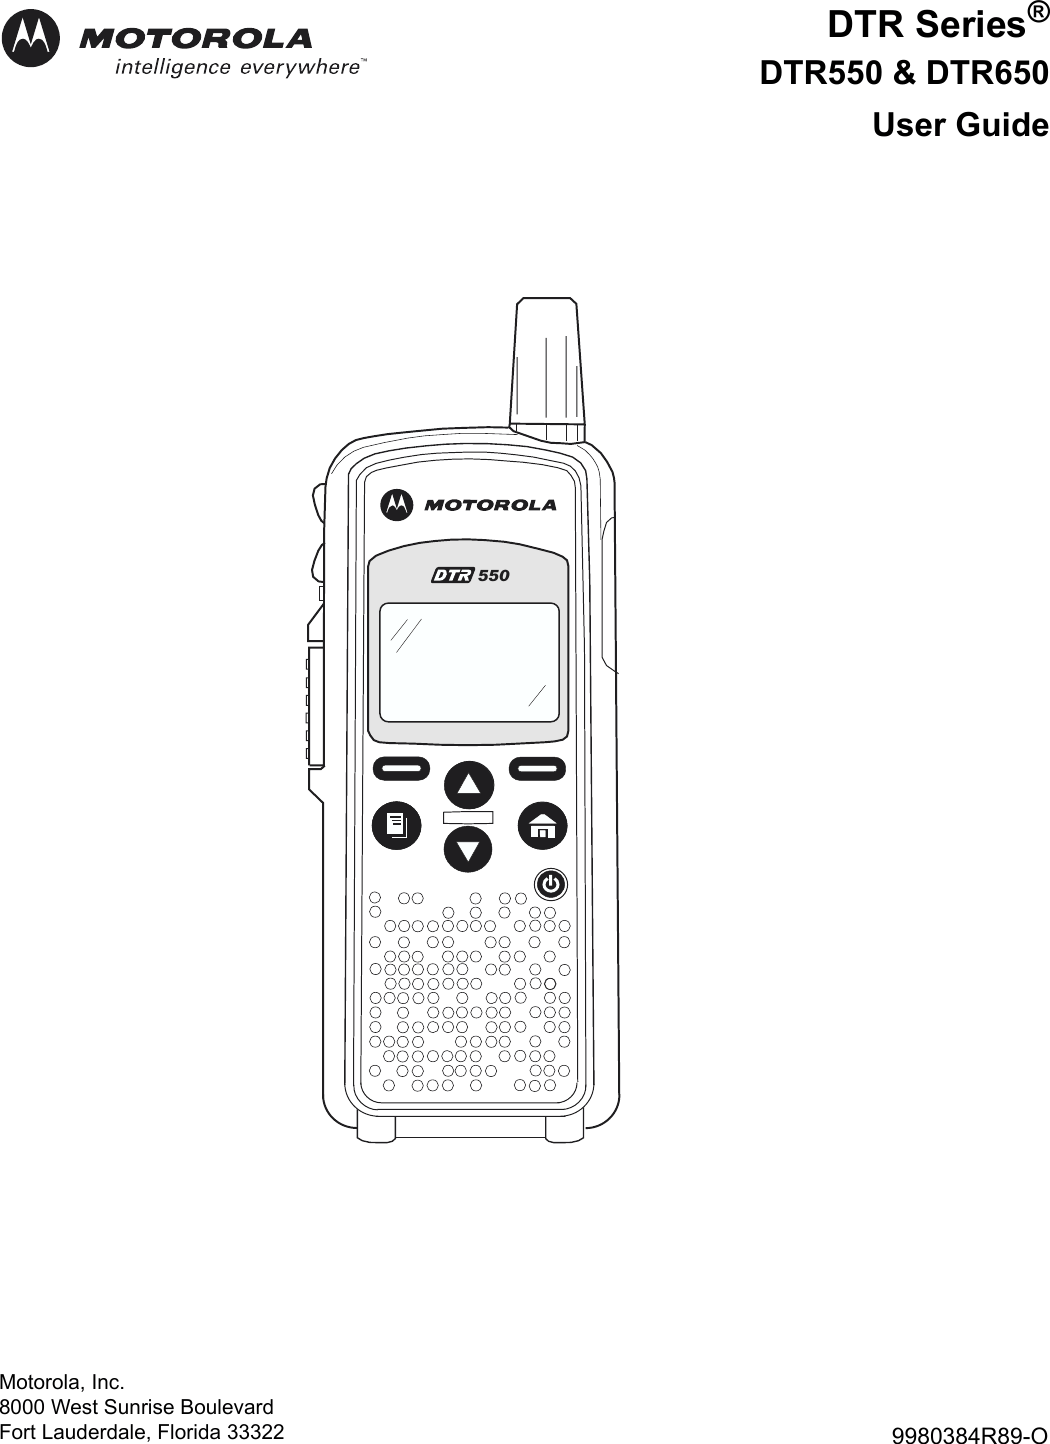 Motorola Dtr Series Dtr550 Users Manual 550 & DTR650 Radios